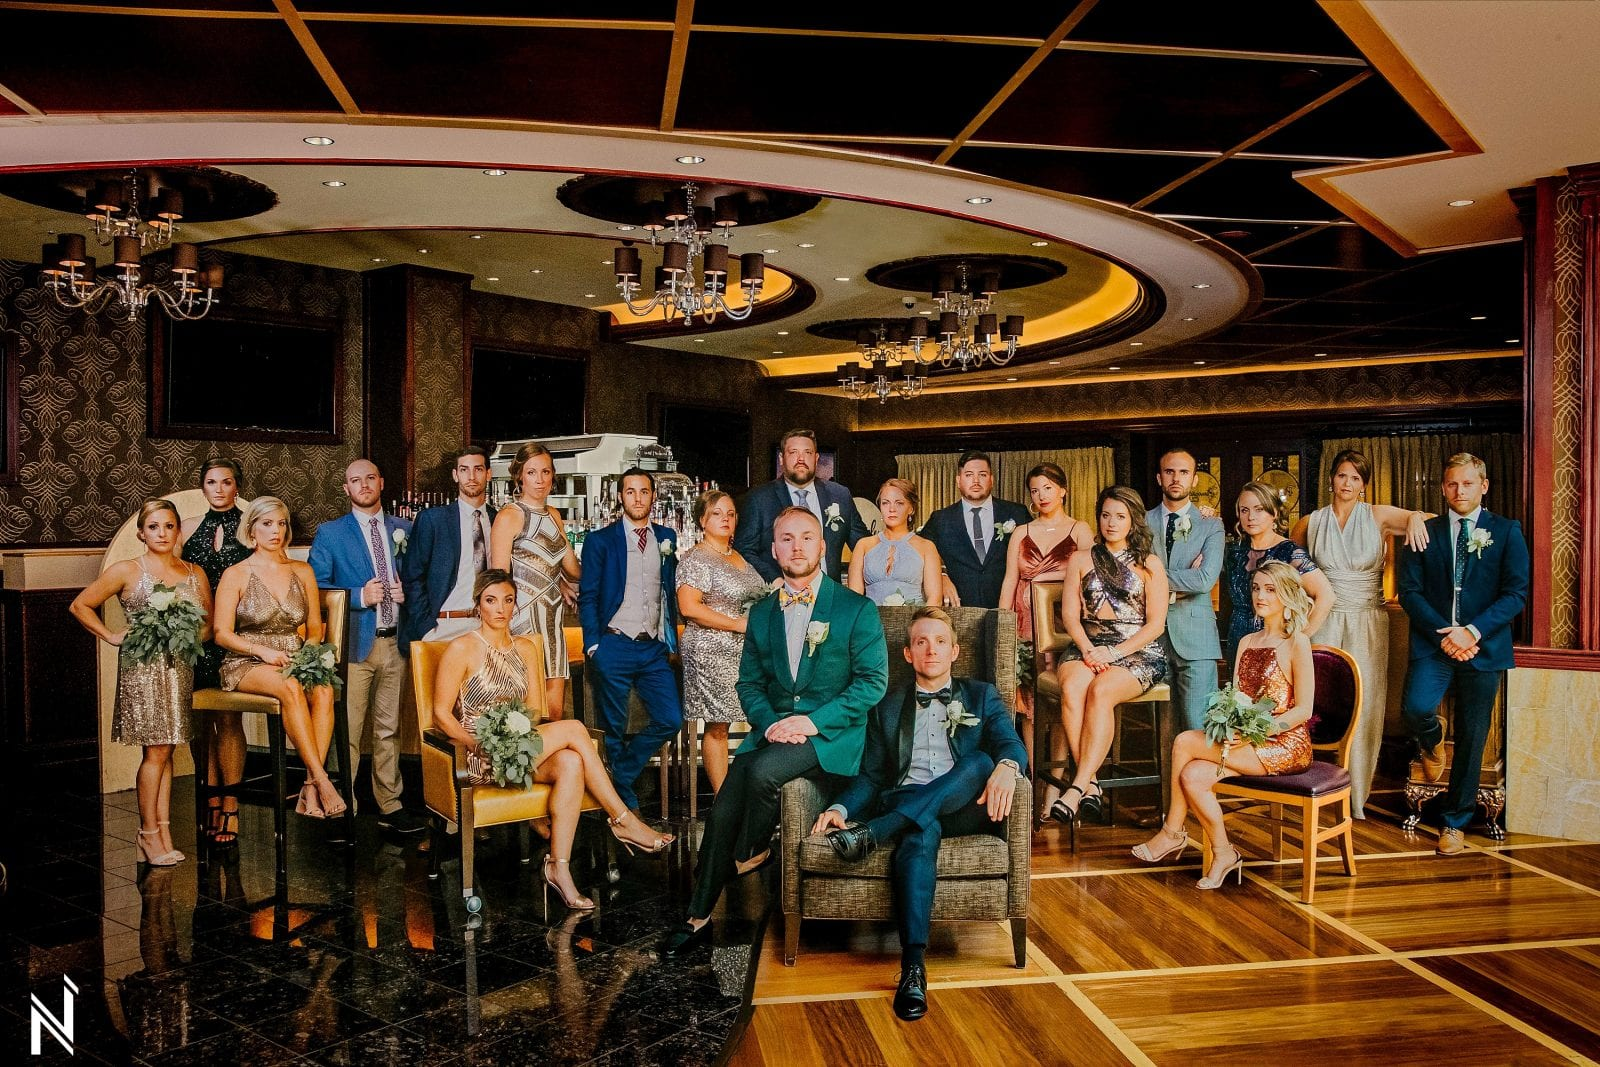 St. Louis epic wedding party photograph at River City Casino